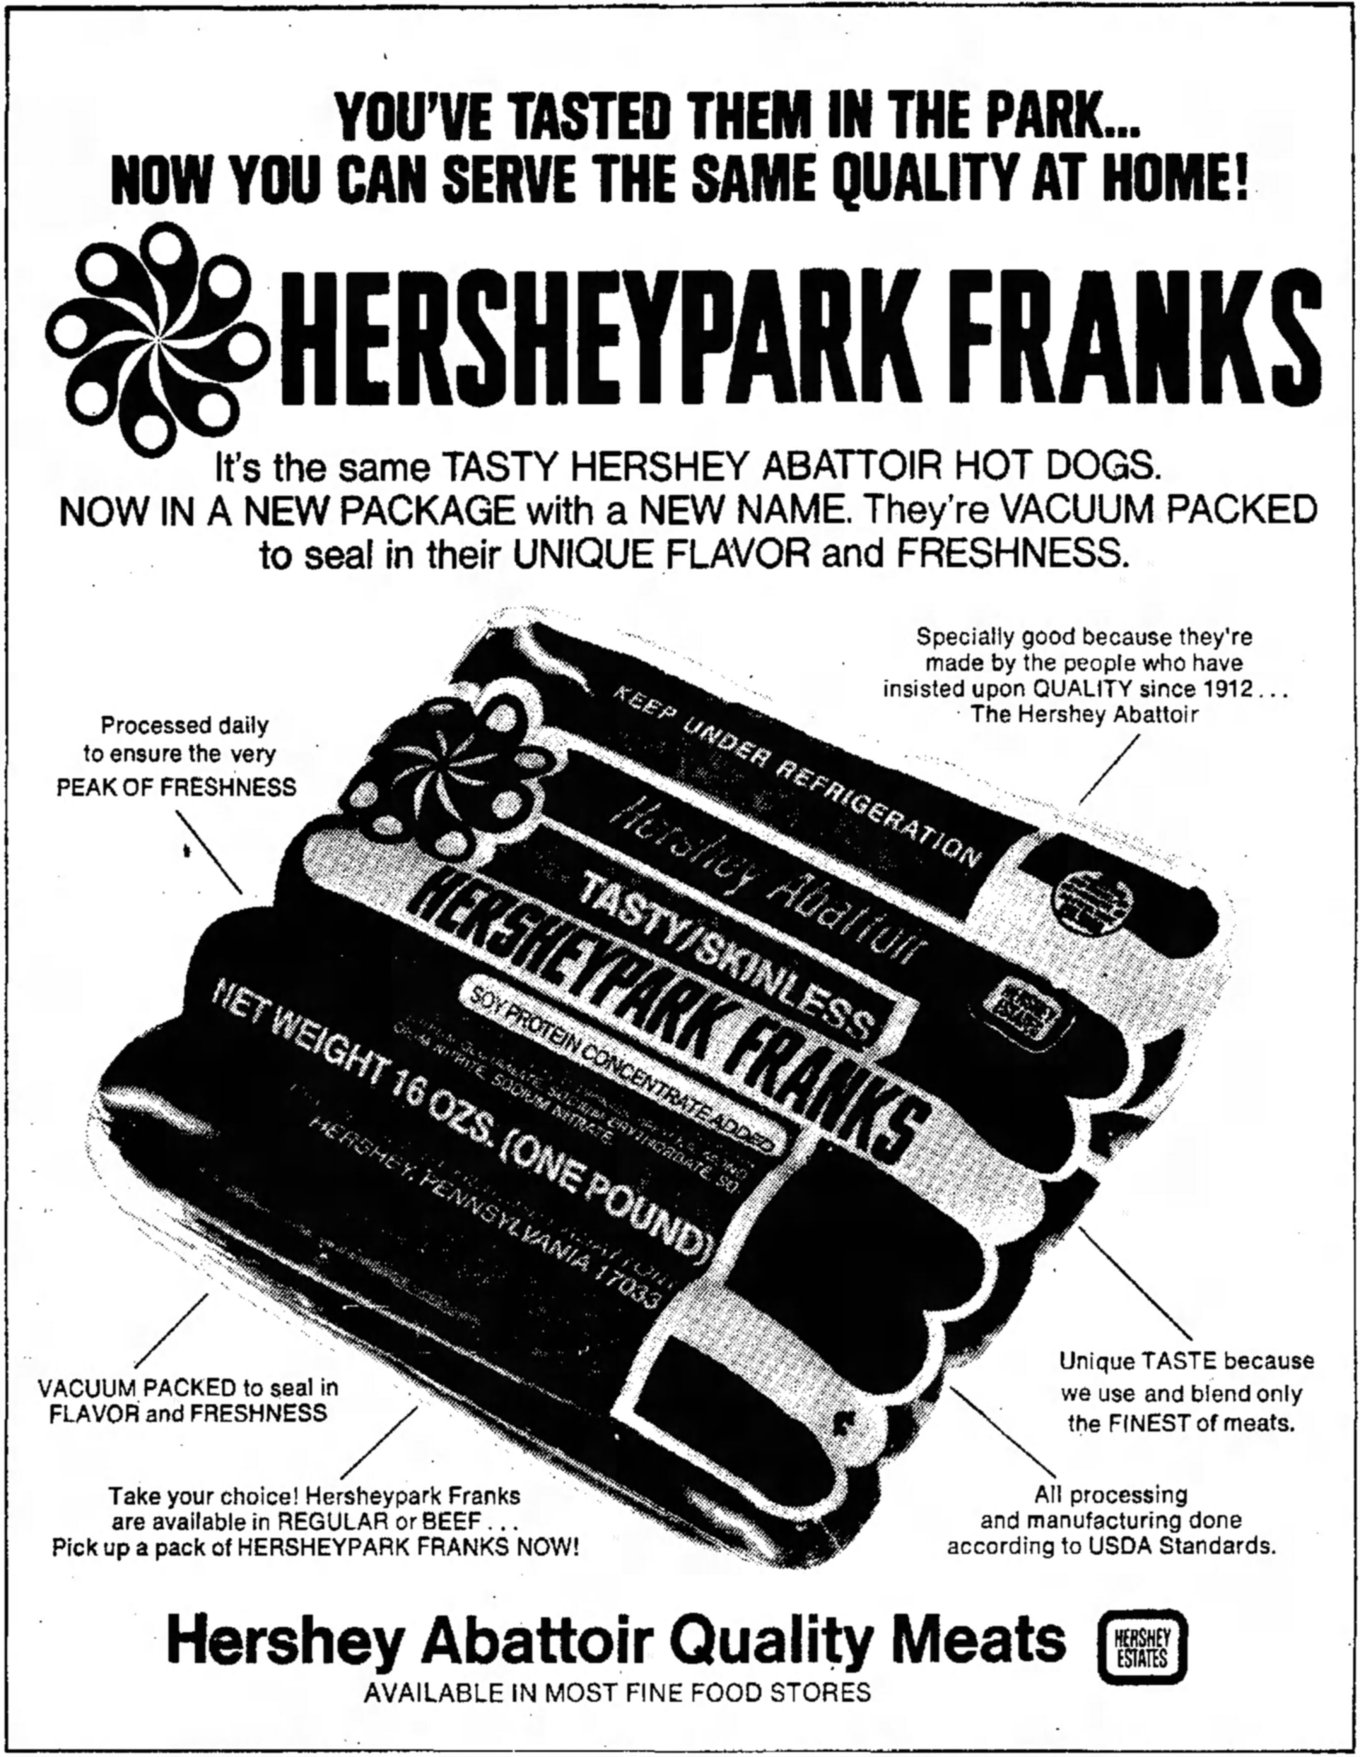 Hershey Abattoir Hersheypark Franks advert